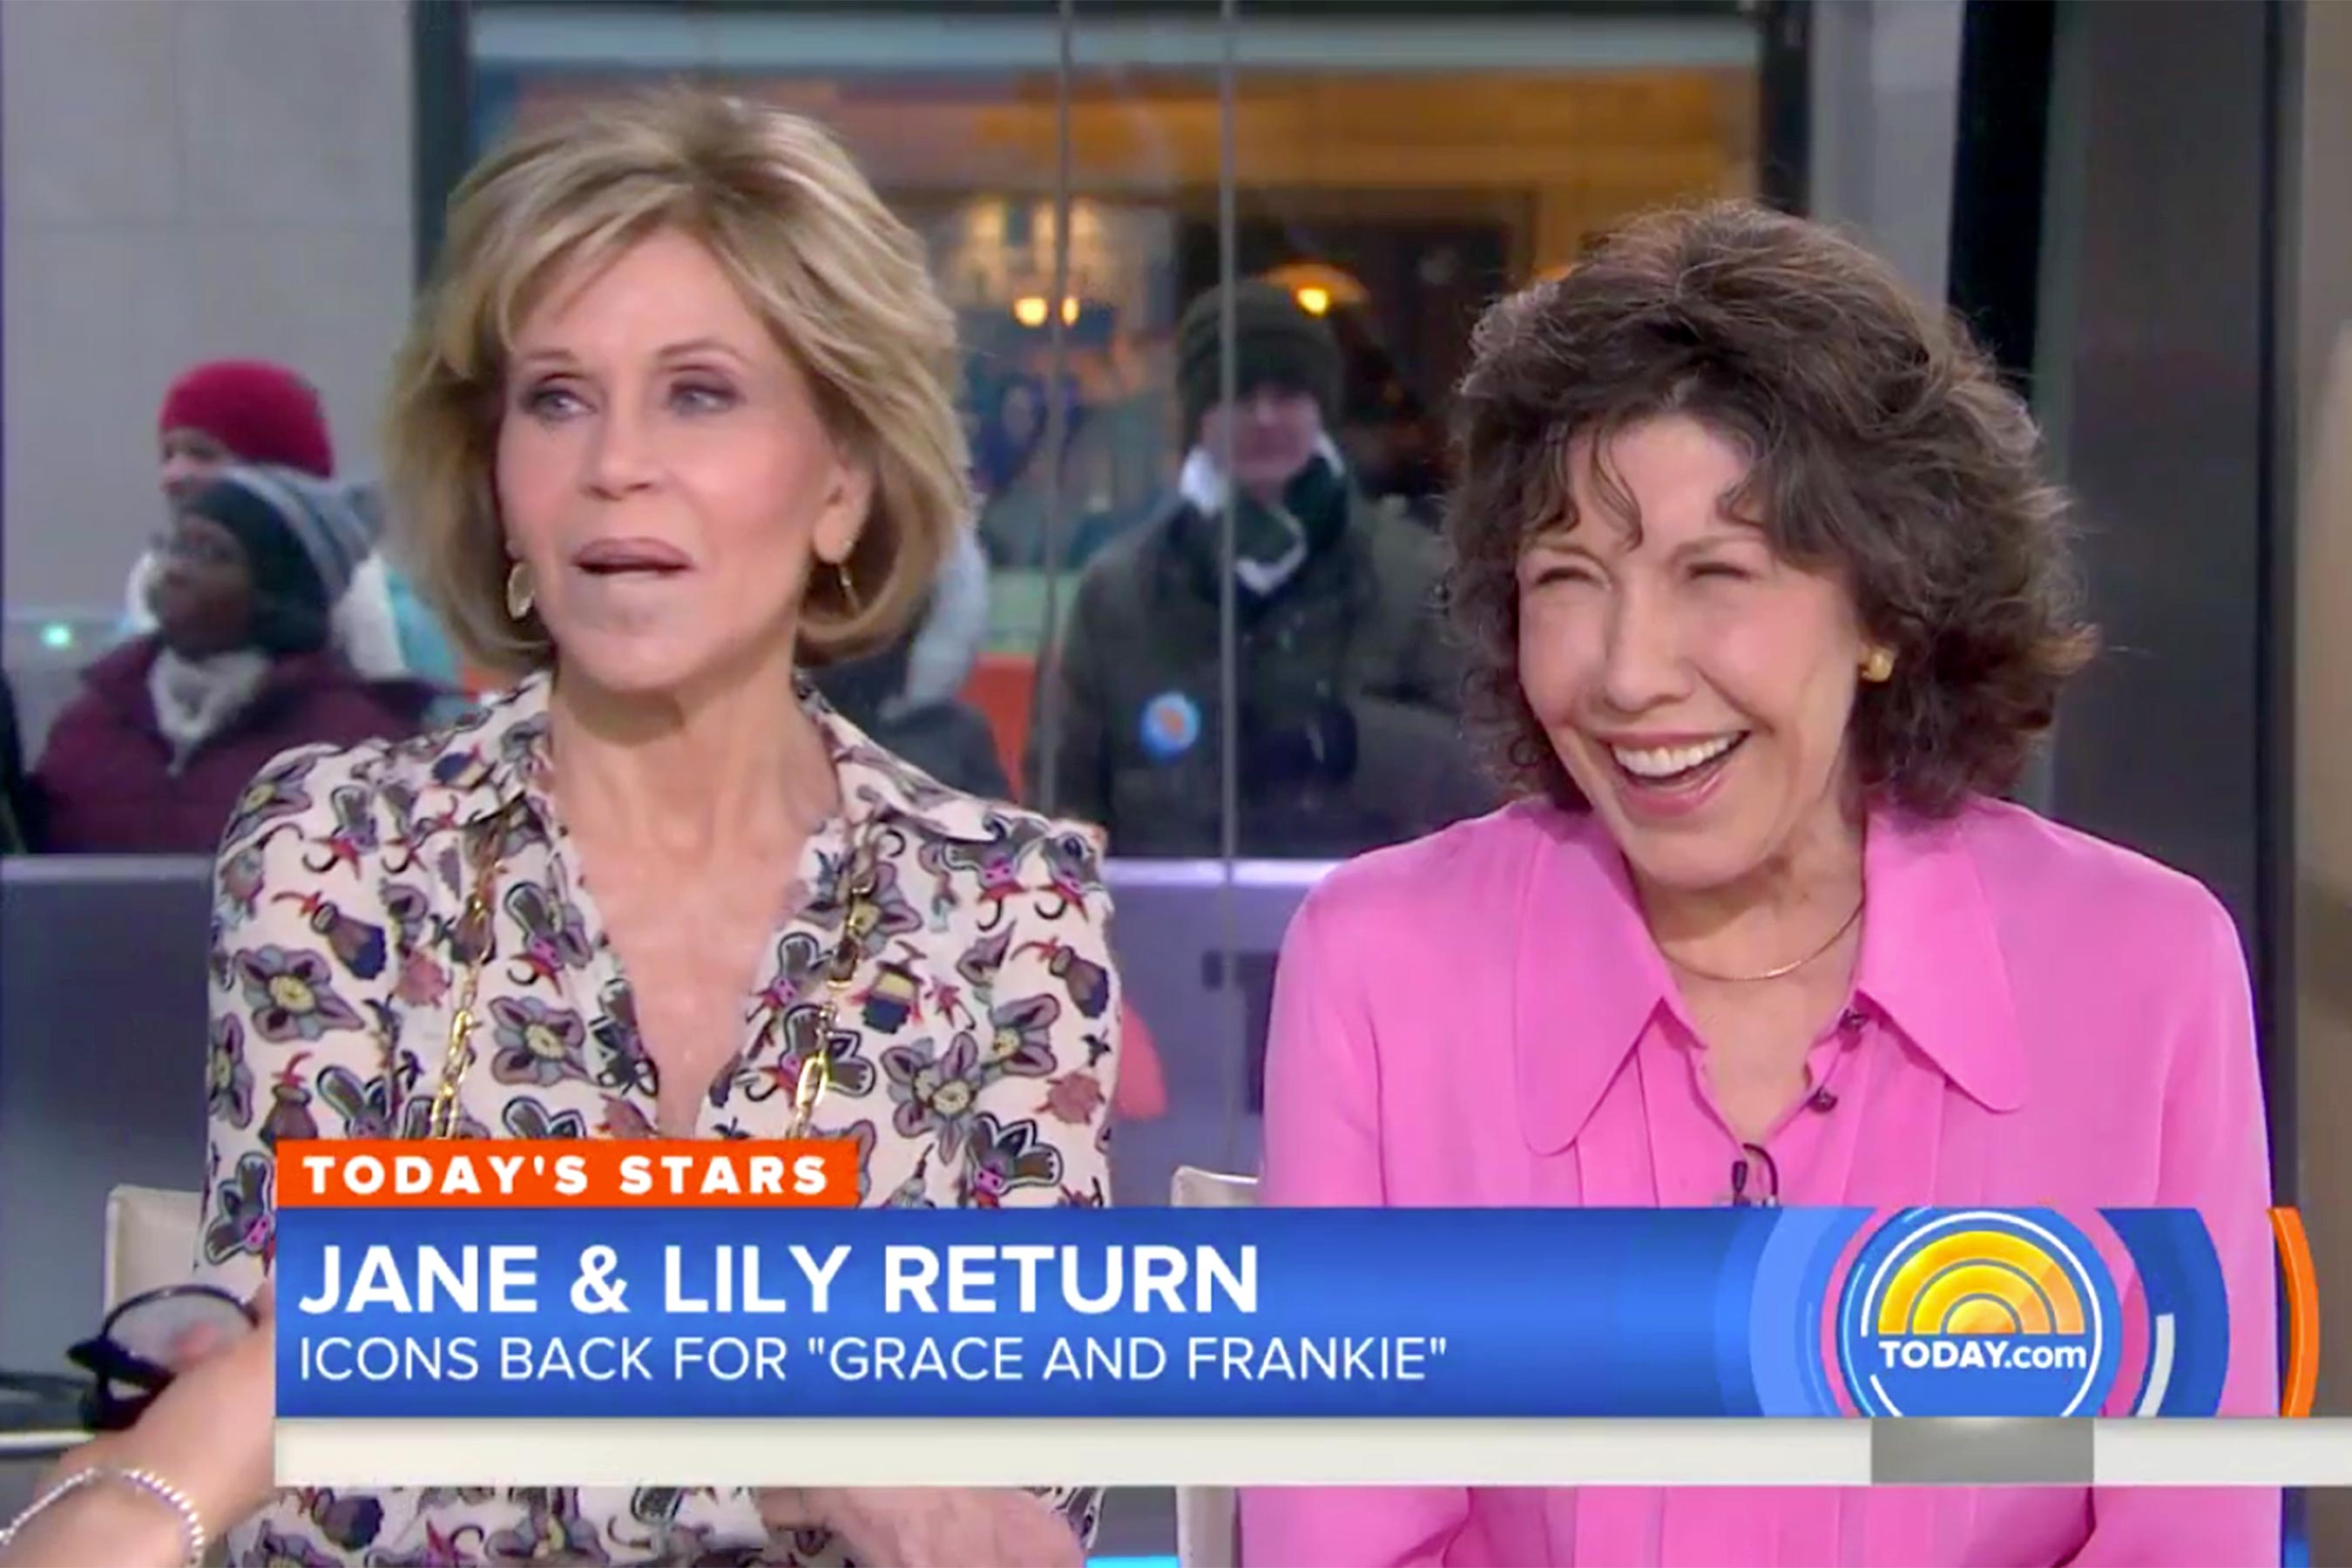 Jane Fonda pokes fun at Megyn Kelly after Lily Tomlin facelift joke